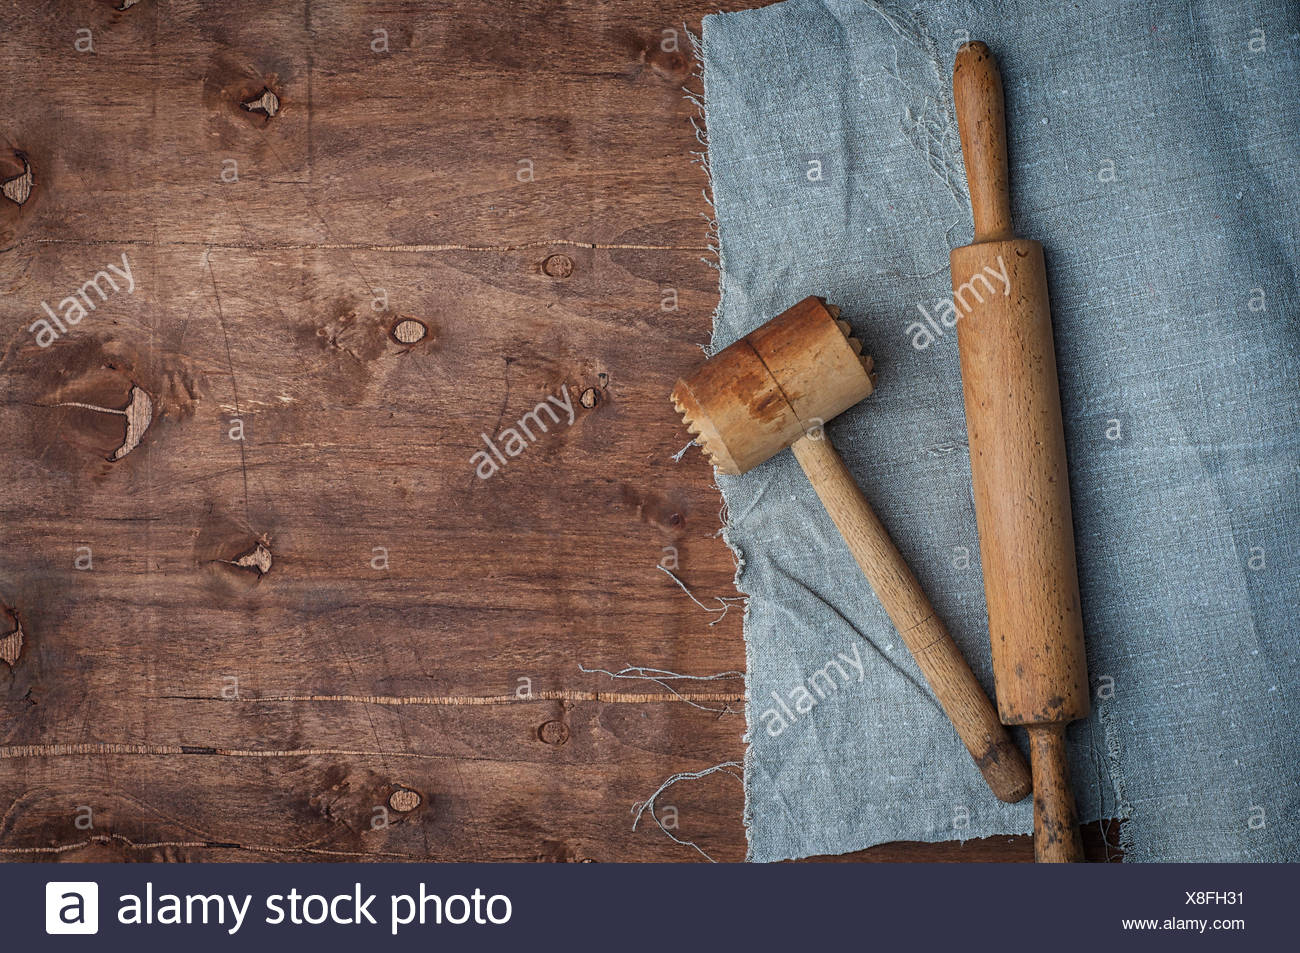 Wooden kitchen items skalka and hammer for beating meat - Stock Image